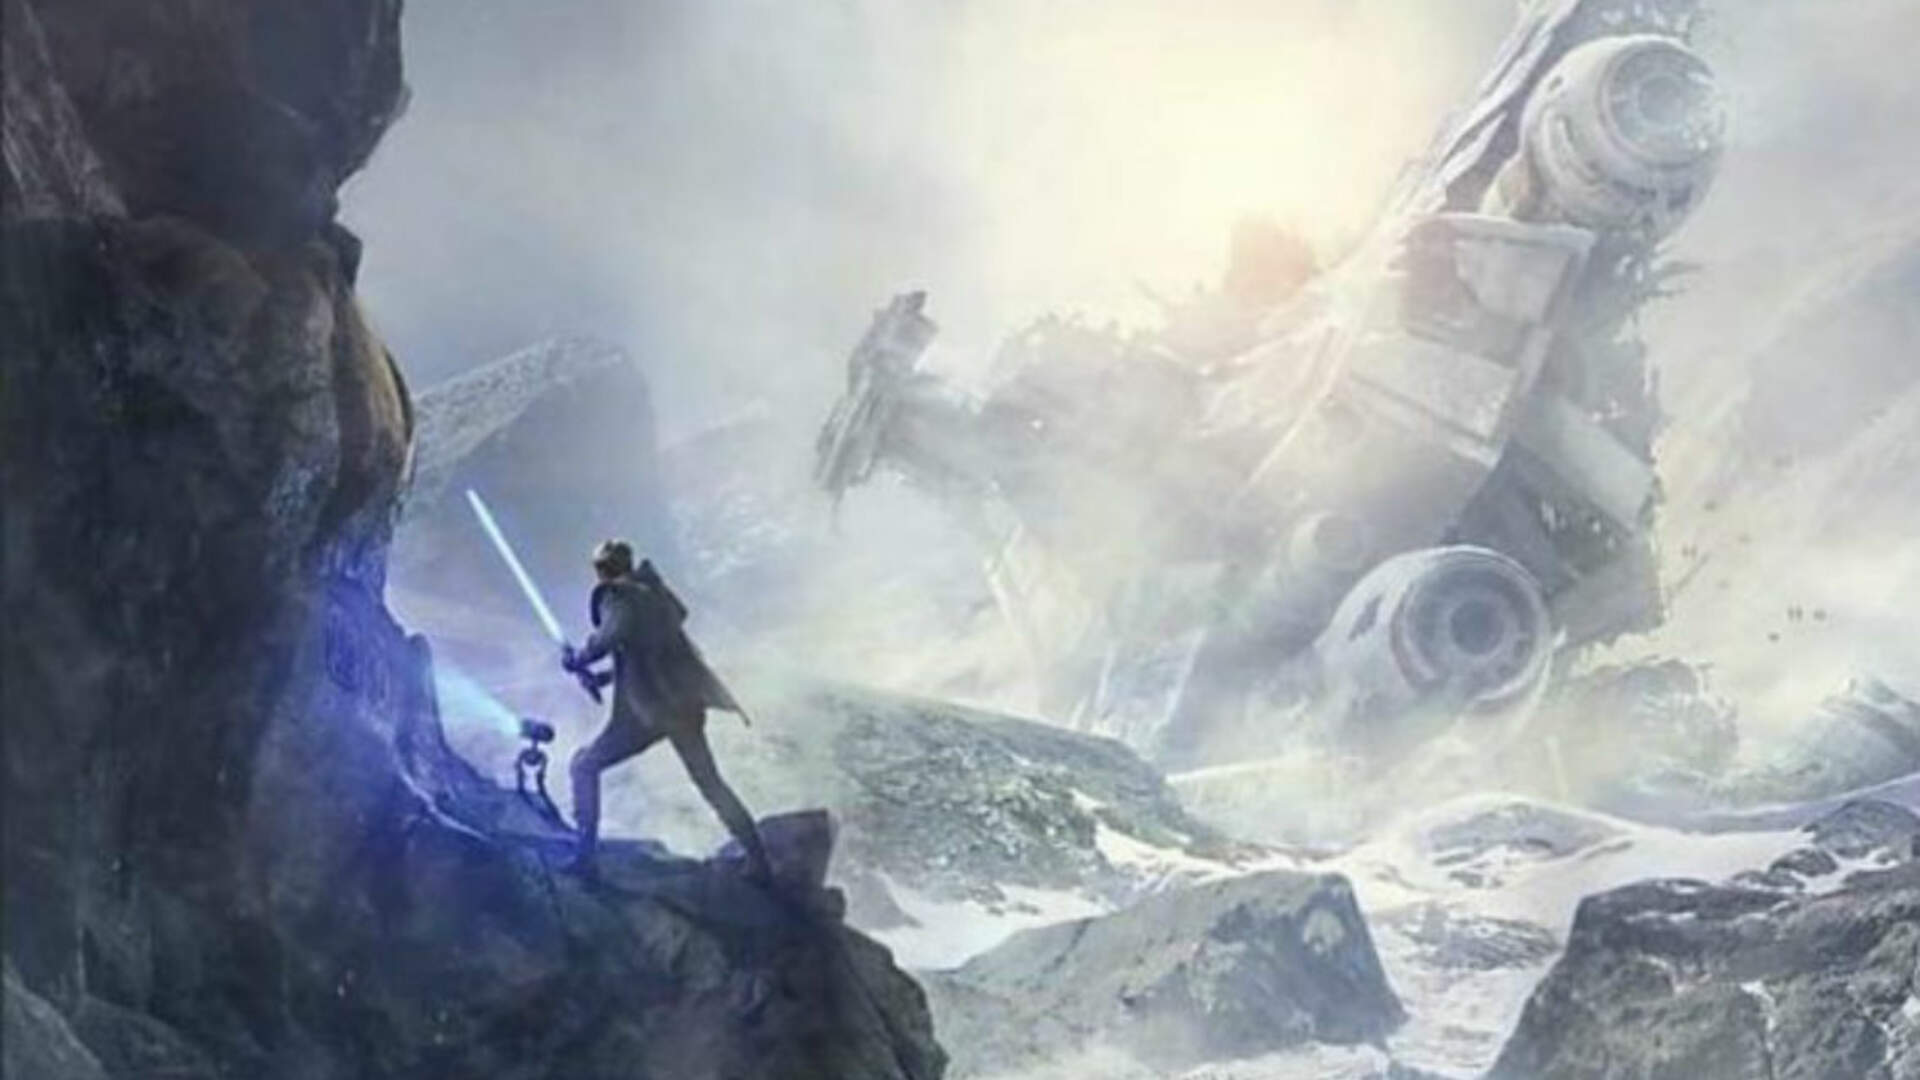 Star Wars Jedi: Fallen Order Poster Leaks on Amazon